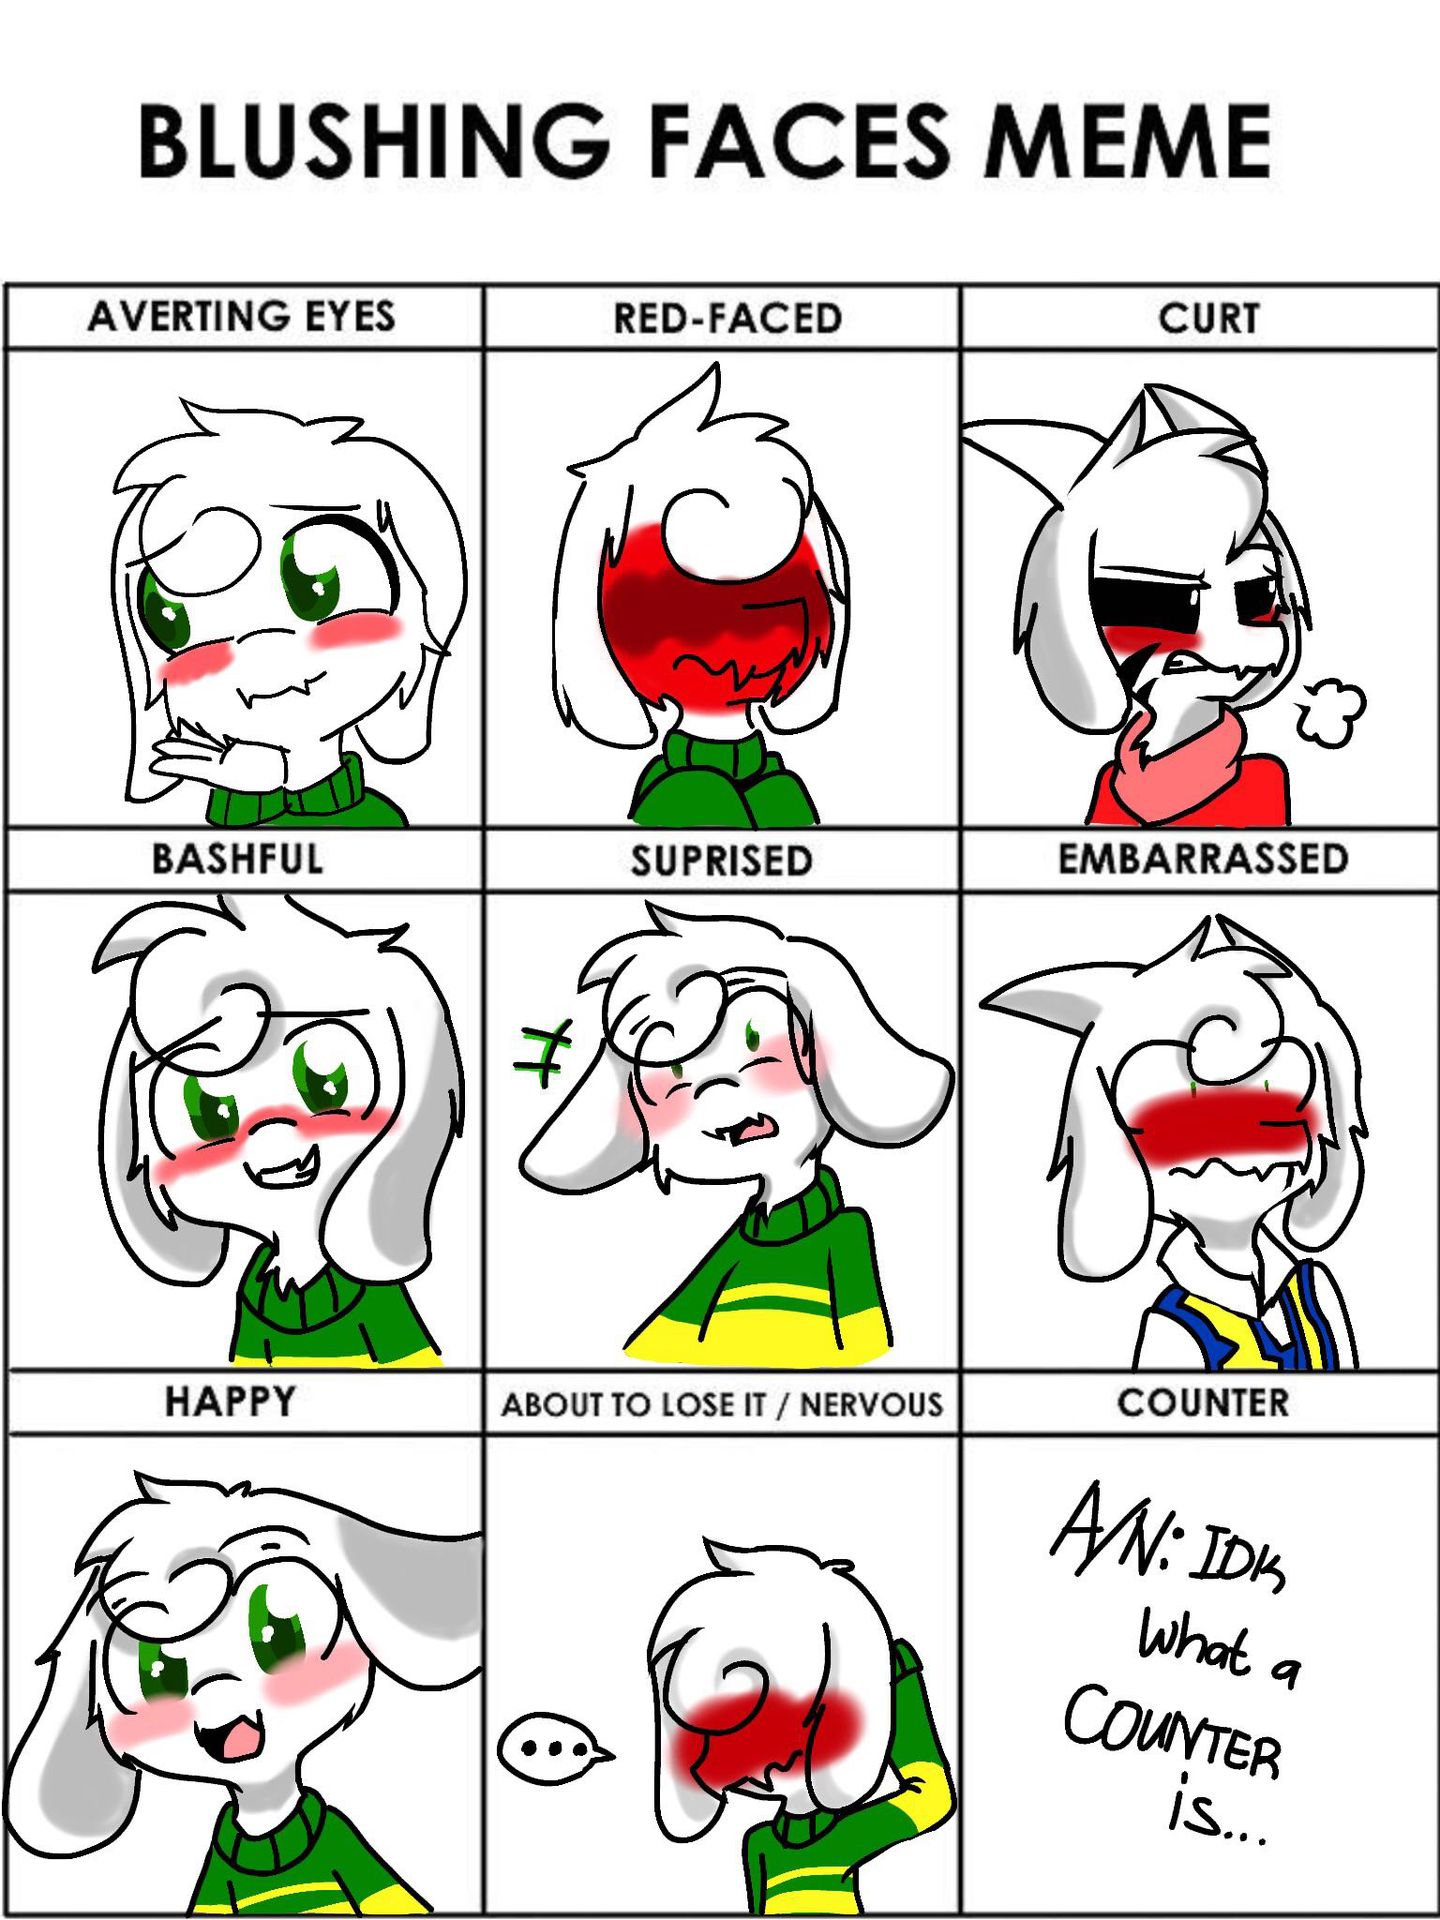 14254a1bd61606a5 welcome back to art stuff with fawn! blushing meme (asriel version